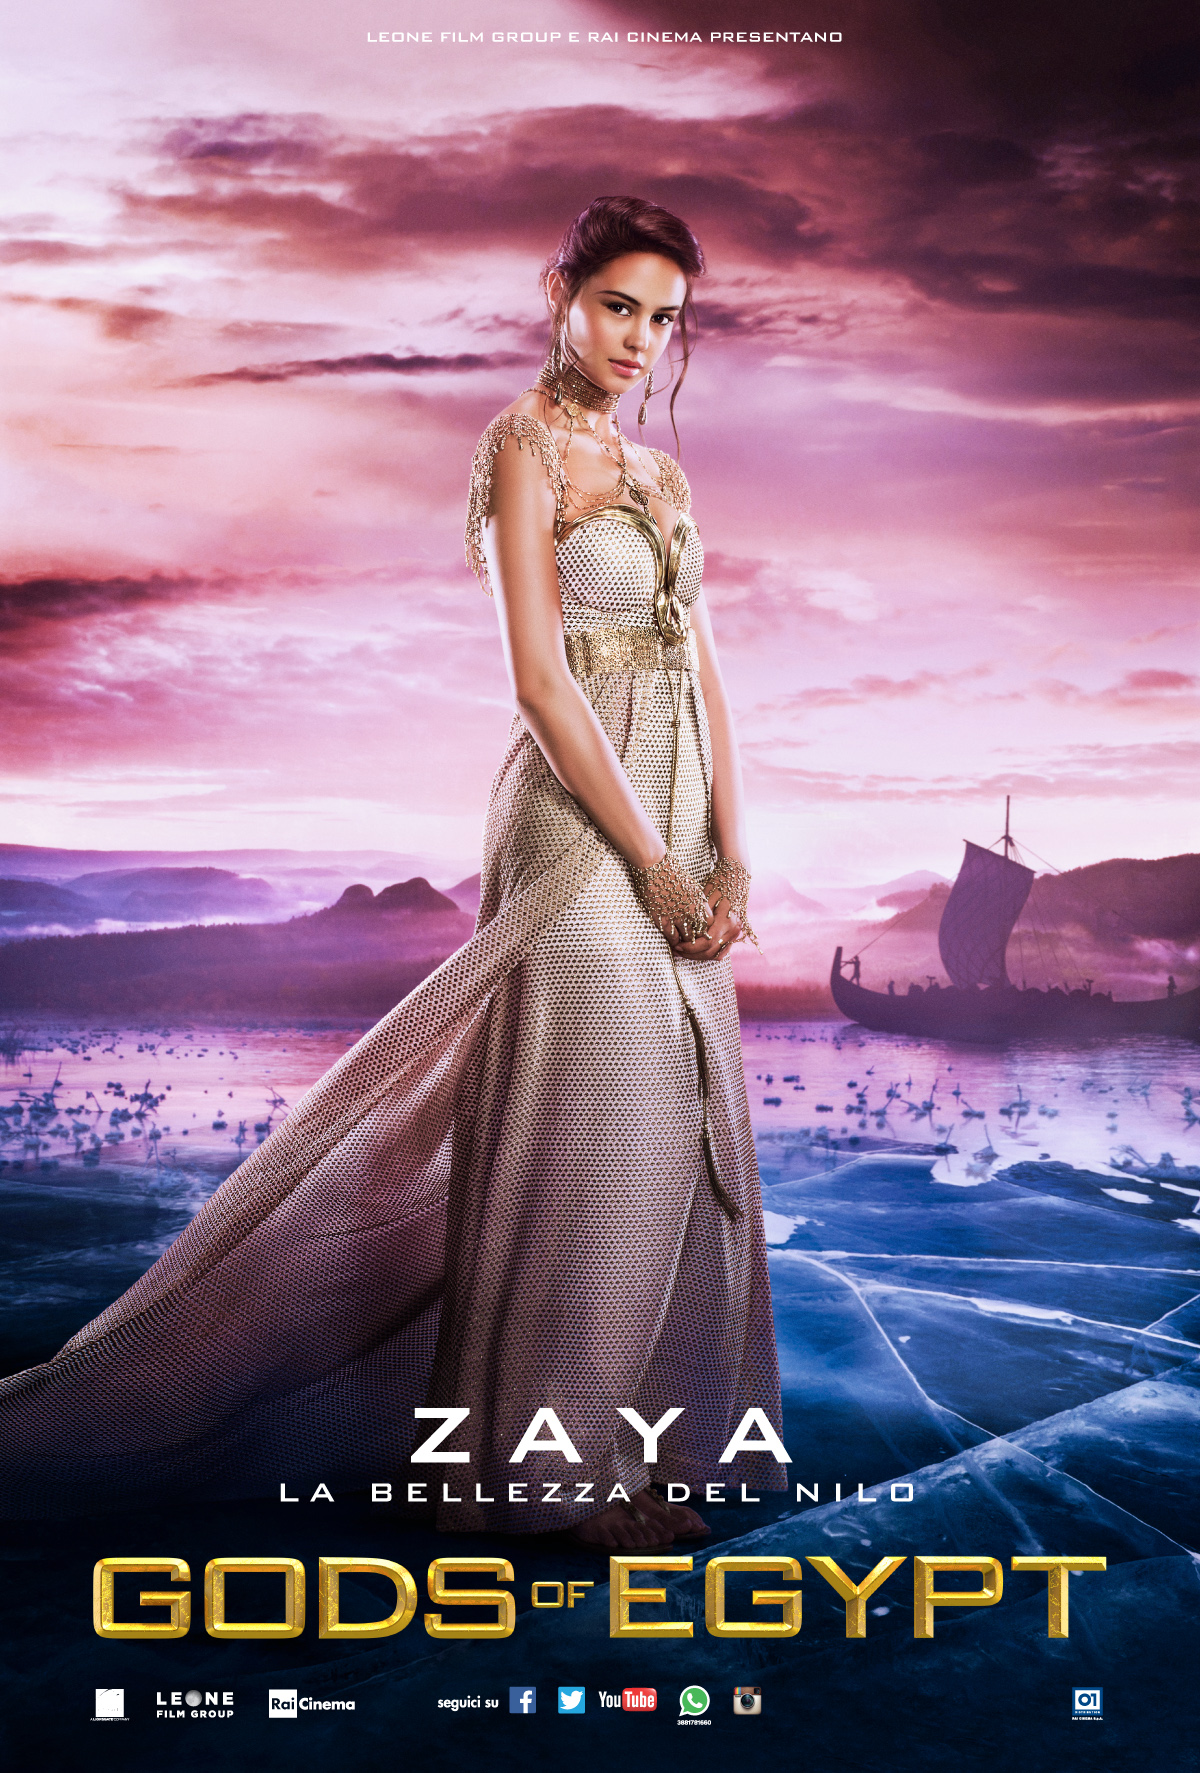 Gods of Egypt: Courtney Eaton nel character poster italiano di Zaya